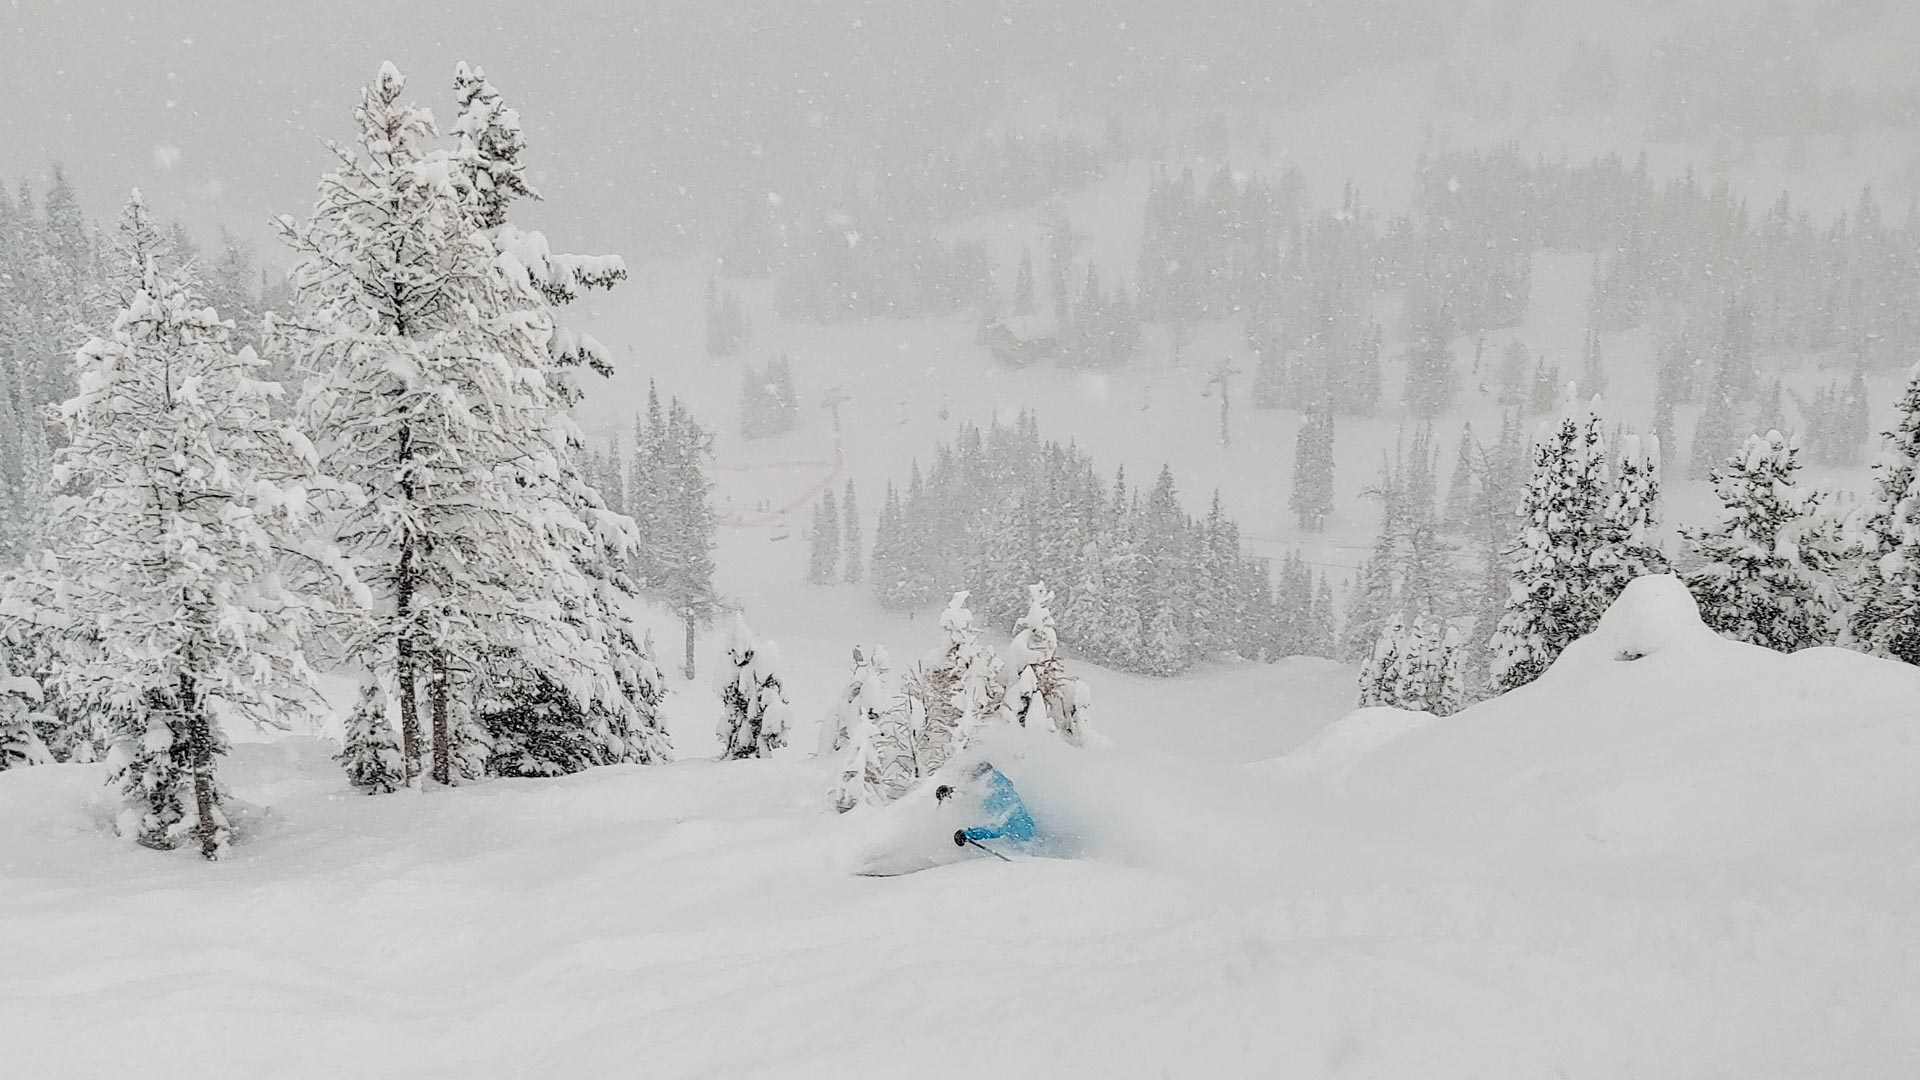 100 Photos of Early Season Powder at SkiBig3 Just in Time for the Holidays